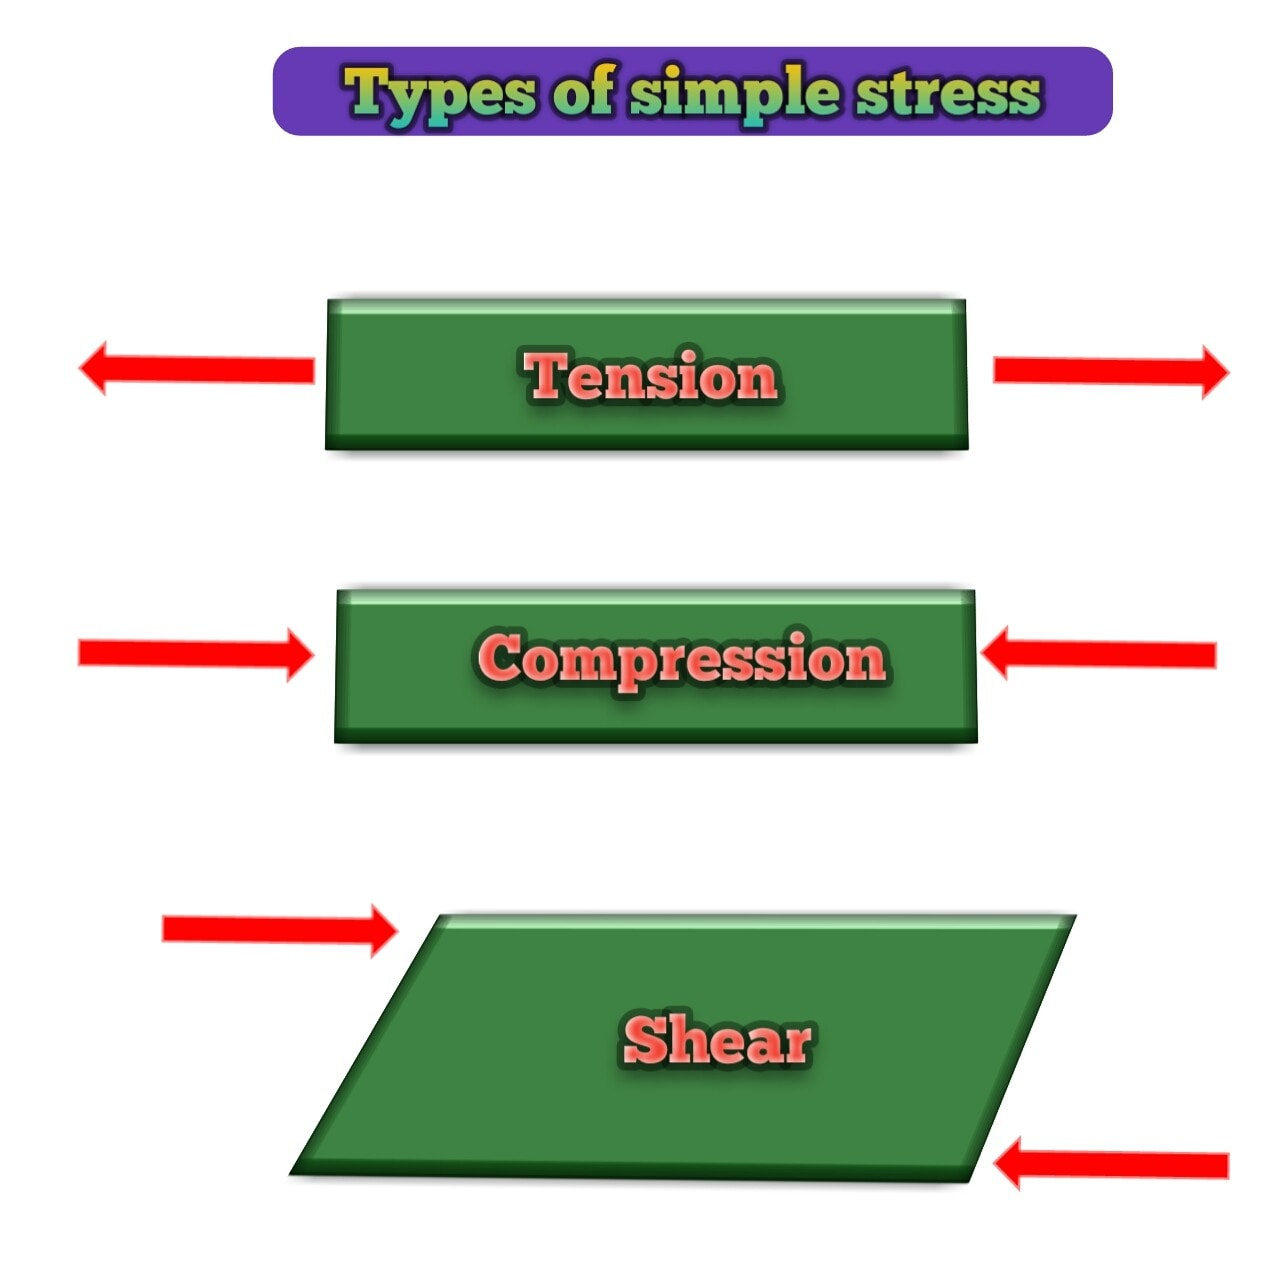 Types of simple stress